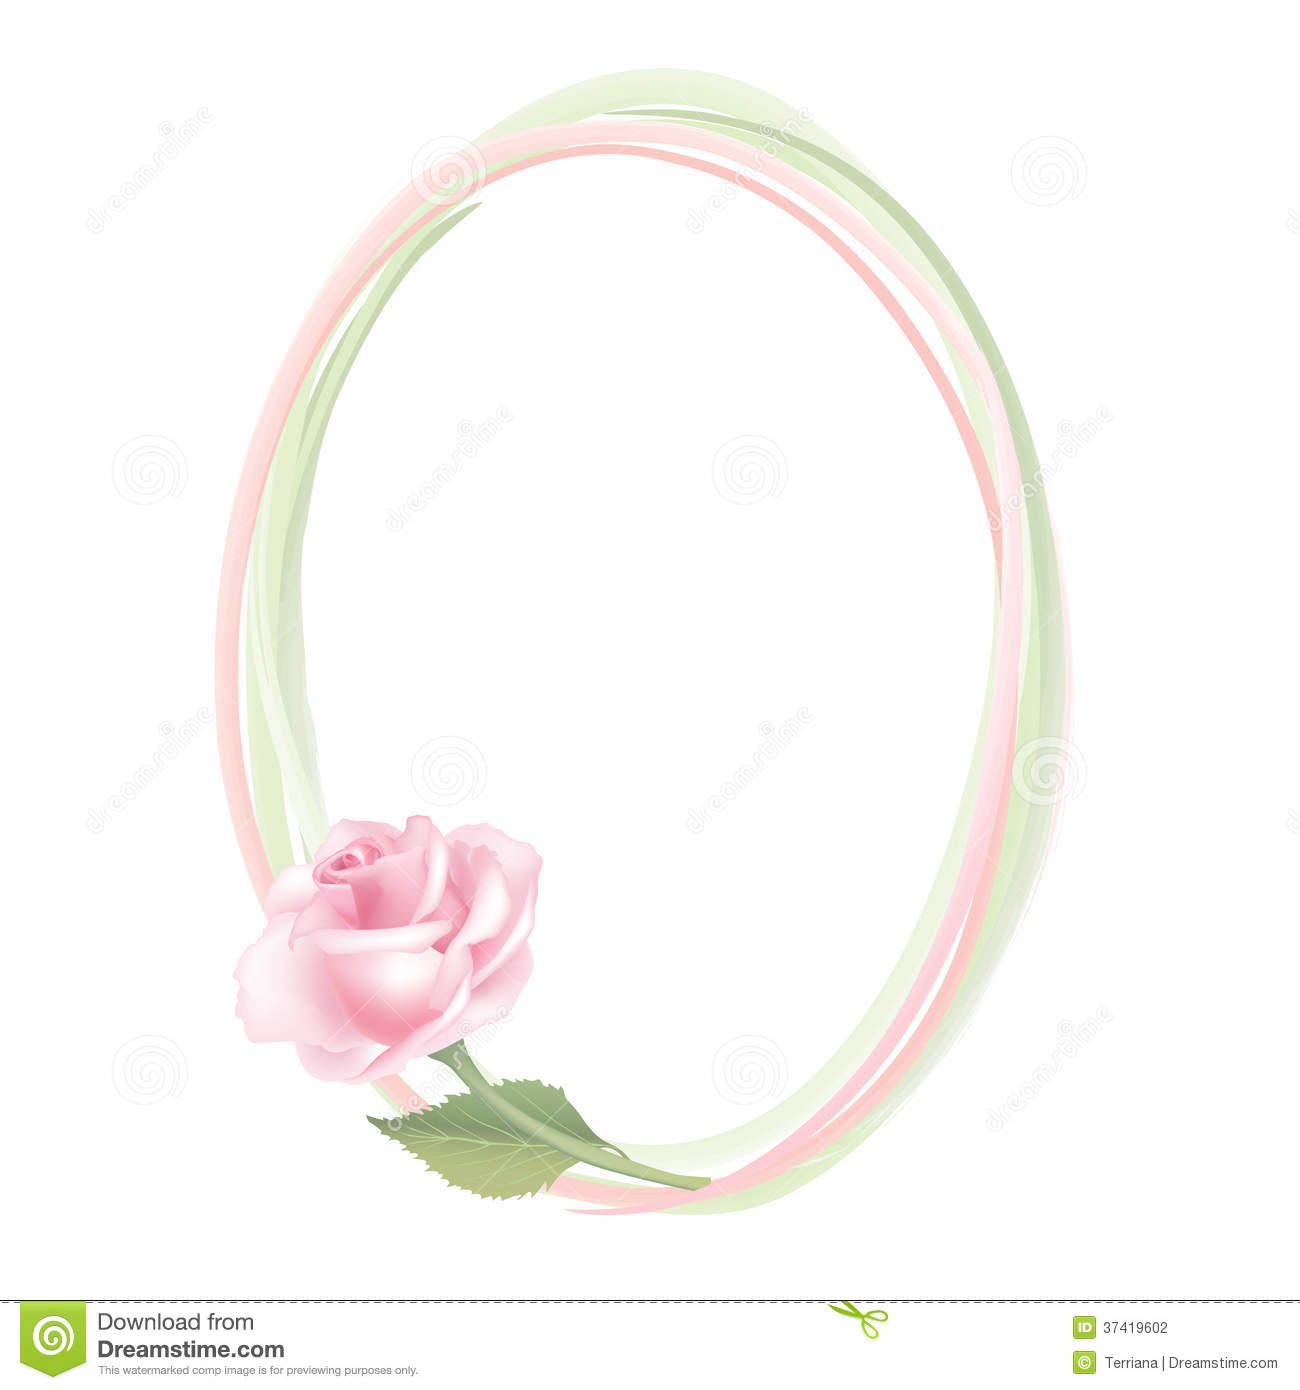 Flower rose frame on white background floral decor stock for Cadre floral mural